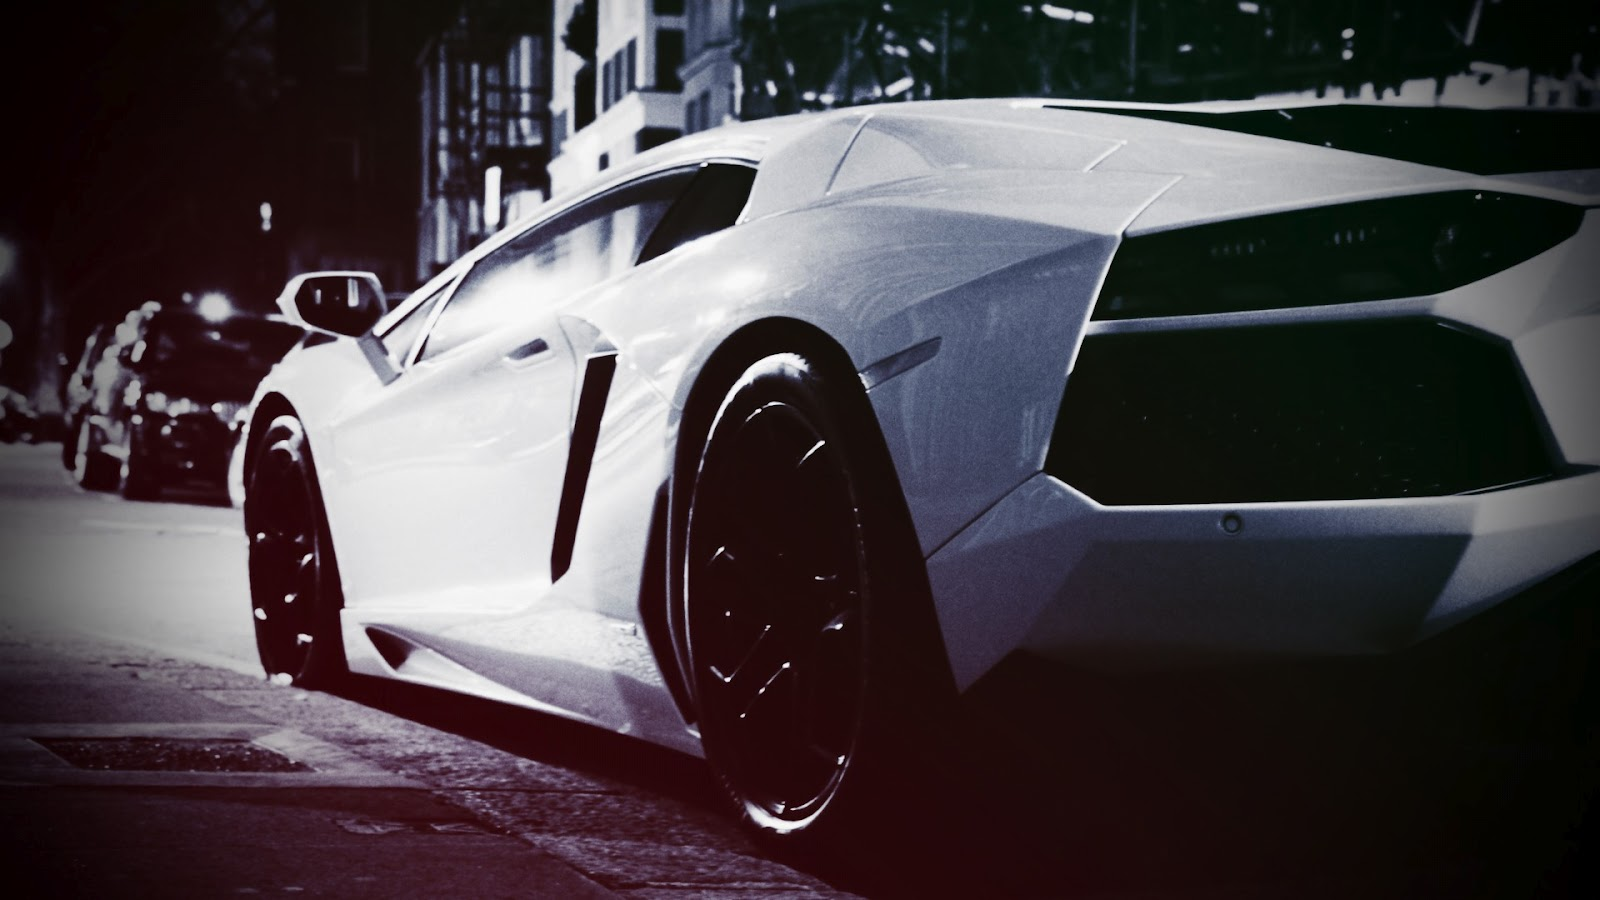 Lamborghini Aventador Car Old Looking Photo HD Wallpaper 1600x900